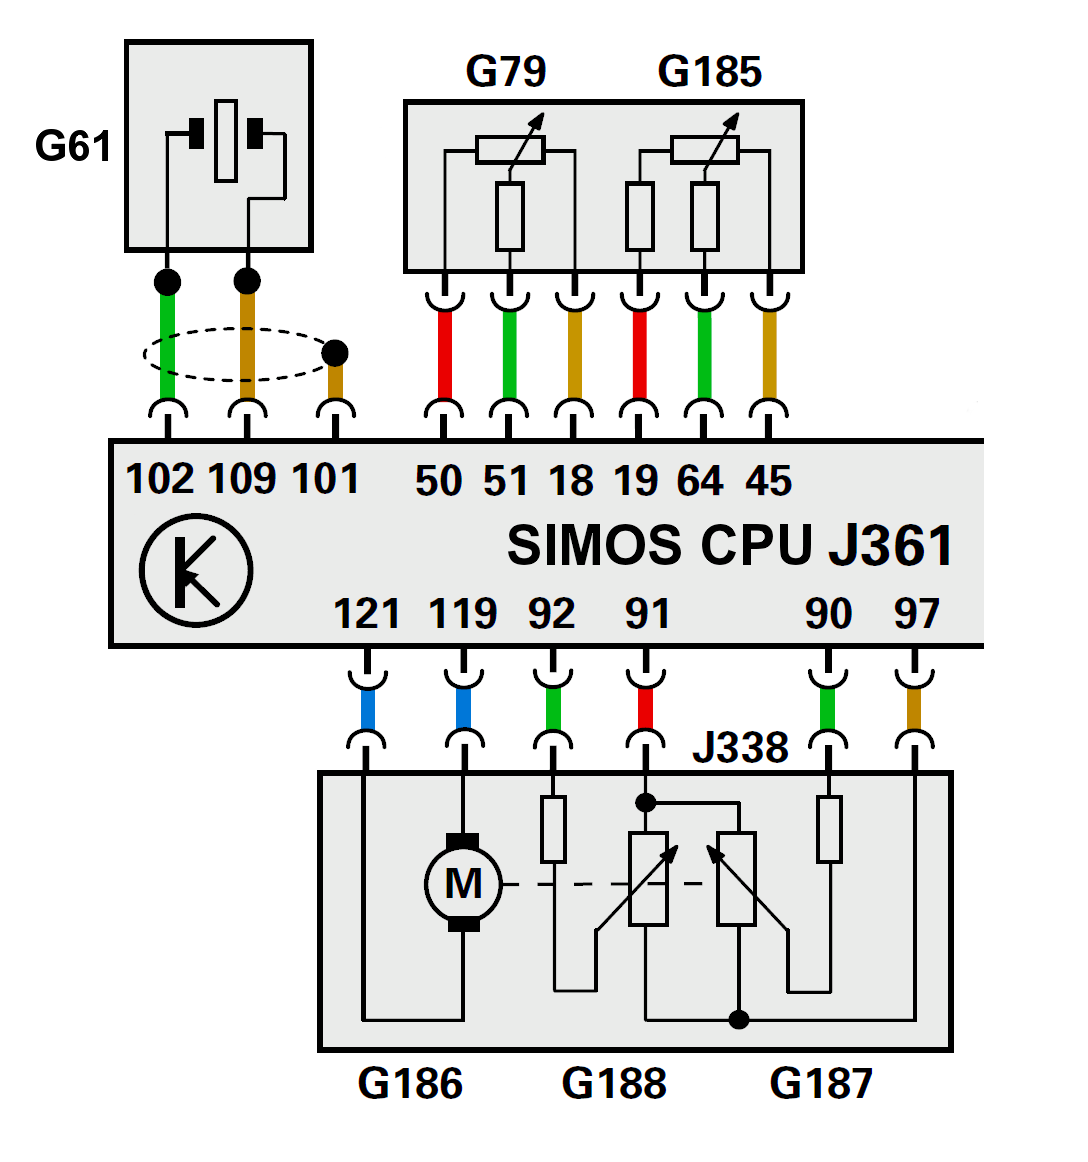 medium resolution of siemens simos ecu j361 with pin connections